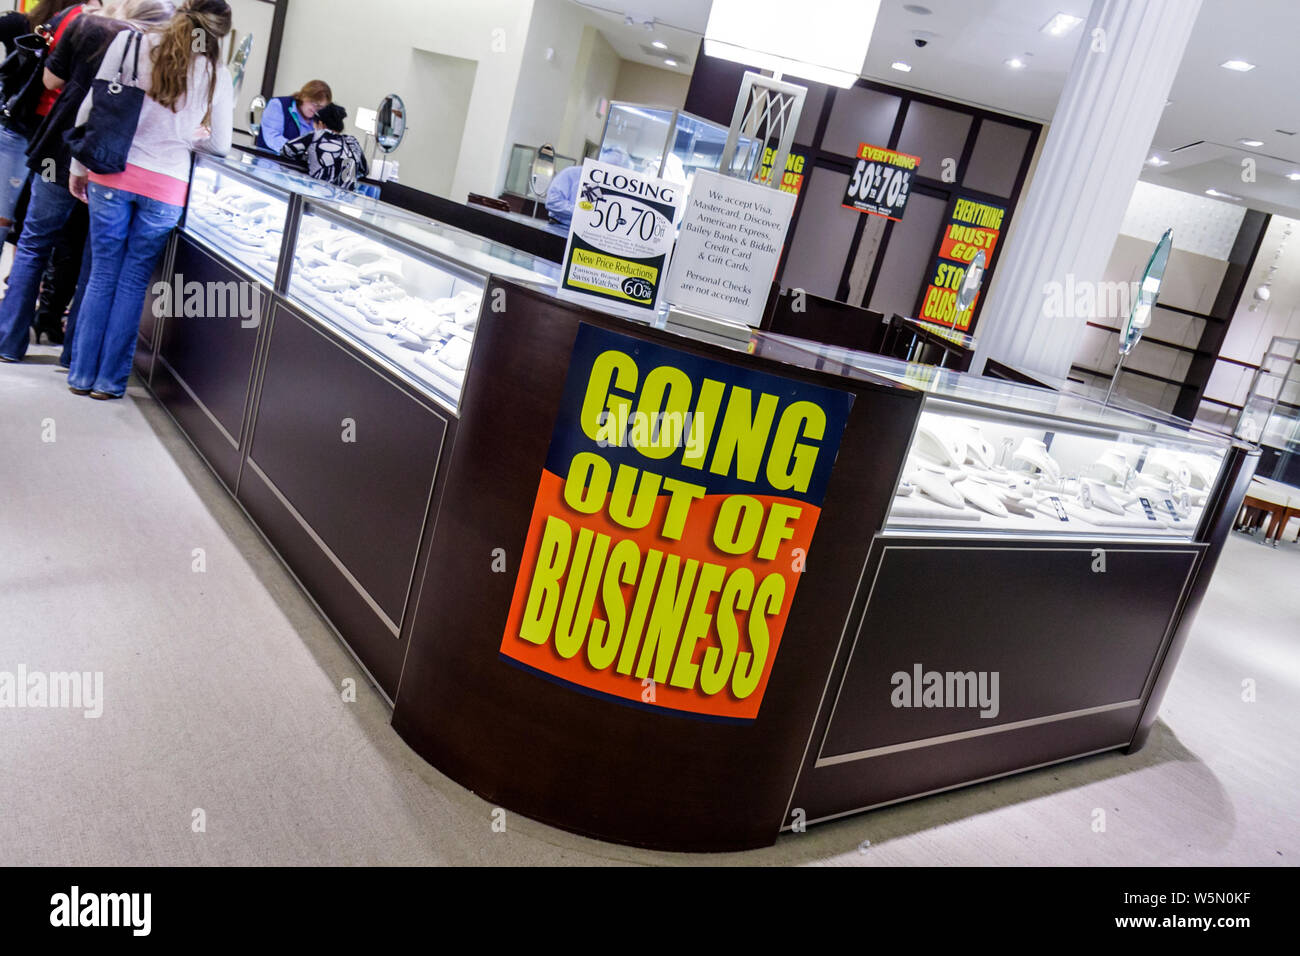 Palm Beach Florida Gardens The Gardens Mall Bailey Banks And Biddle Jeweler Jewelry Store Business Retail Shopping Closing Goi Stock Photo 261690339 Alamy